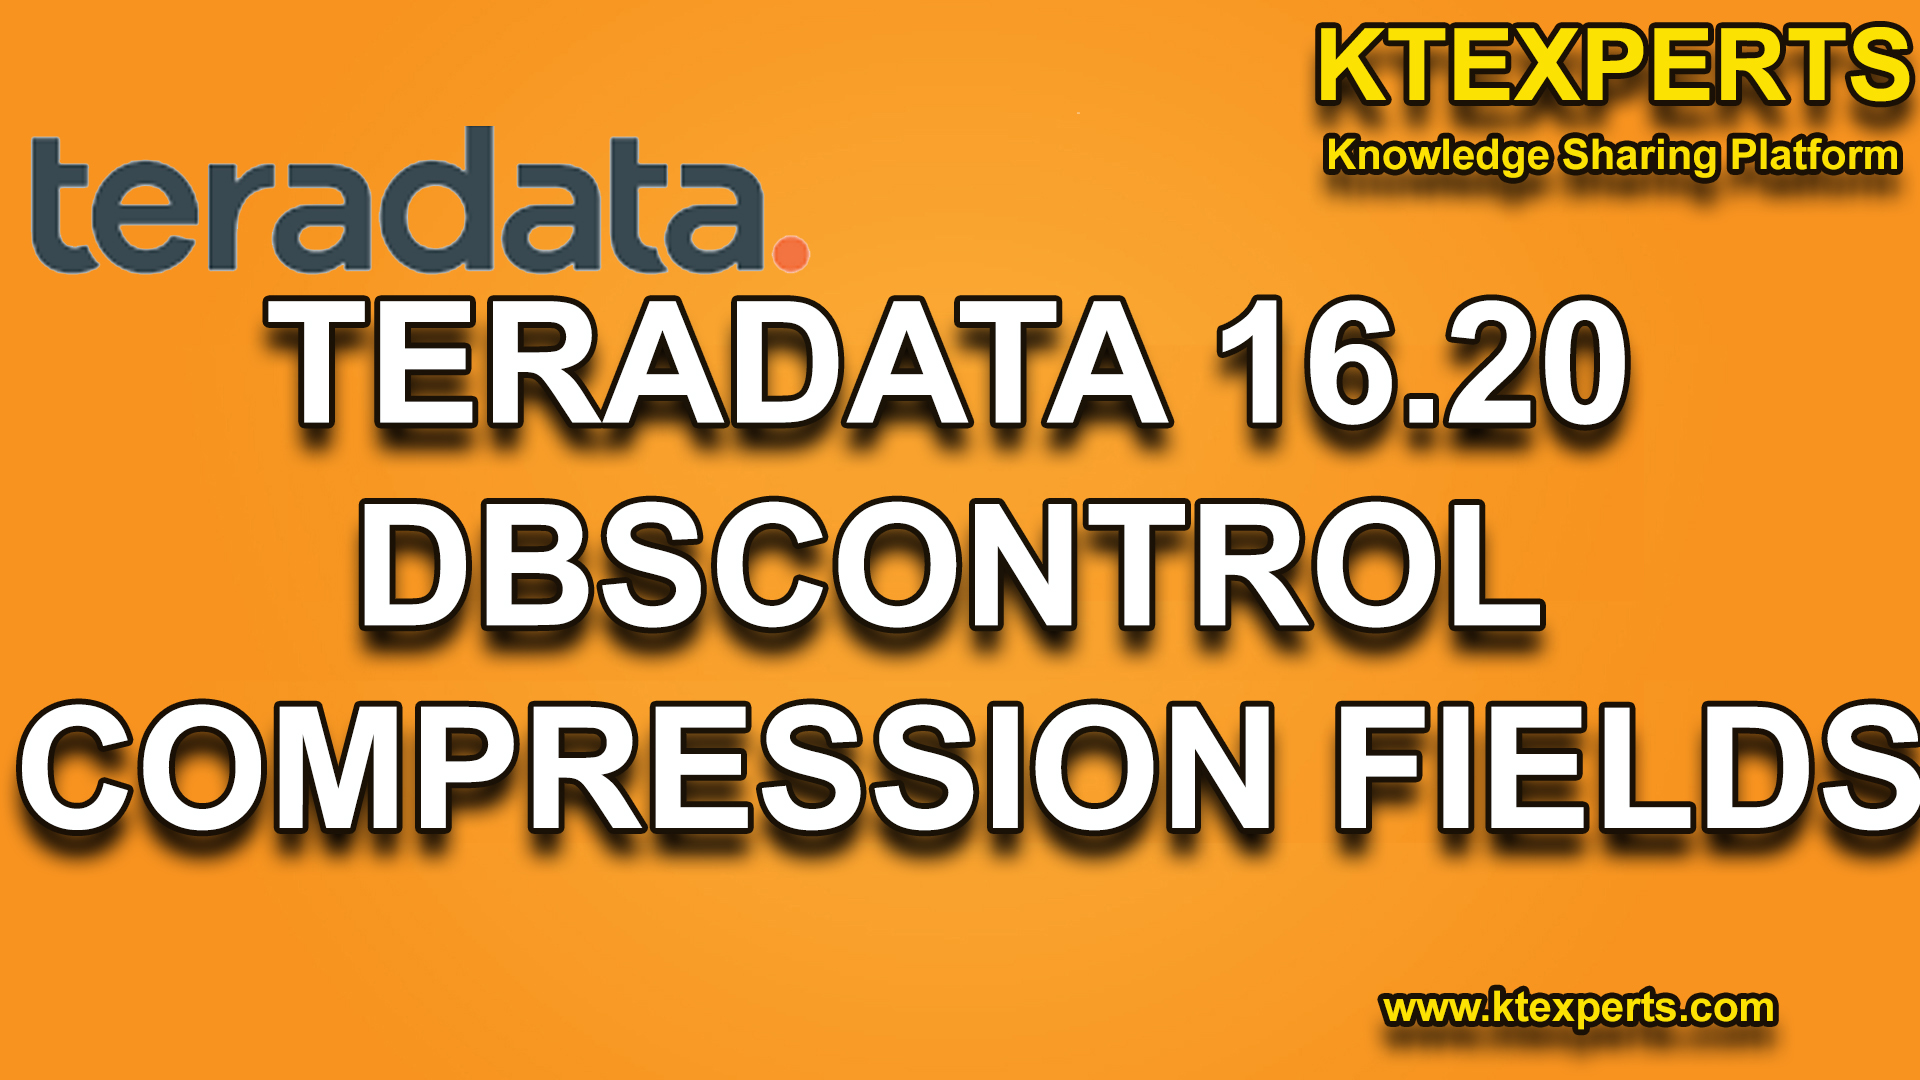 TERADATA 16.20 DBSCONTROL COMPRESSION FIELDS